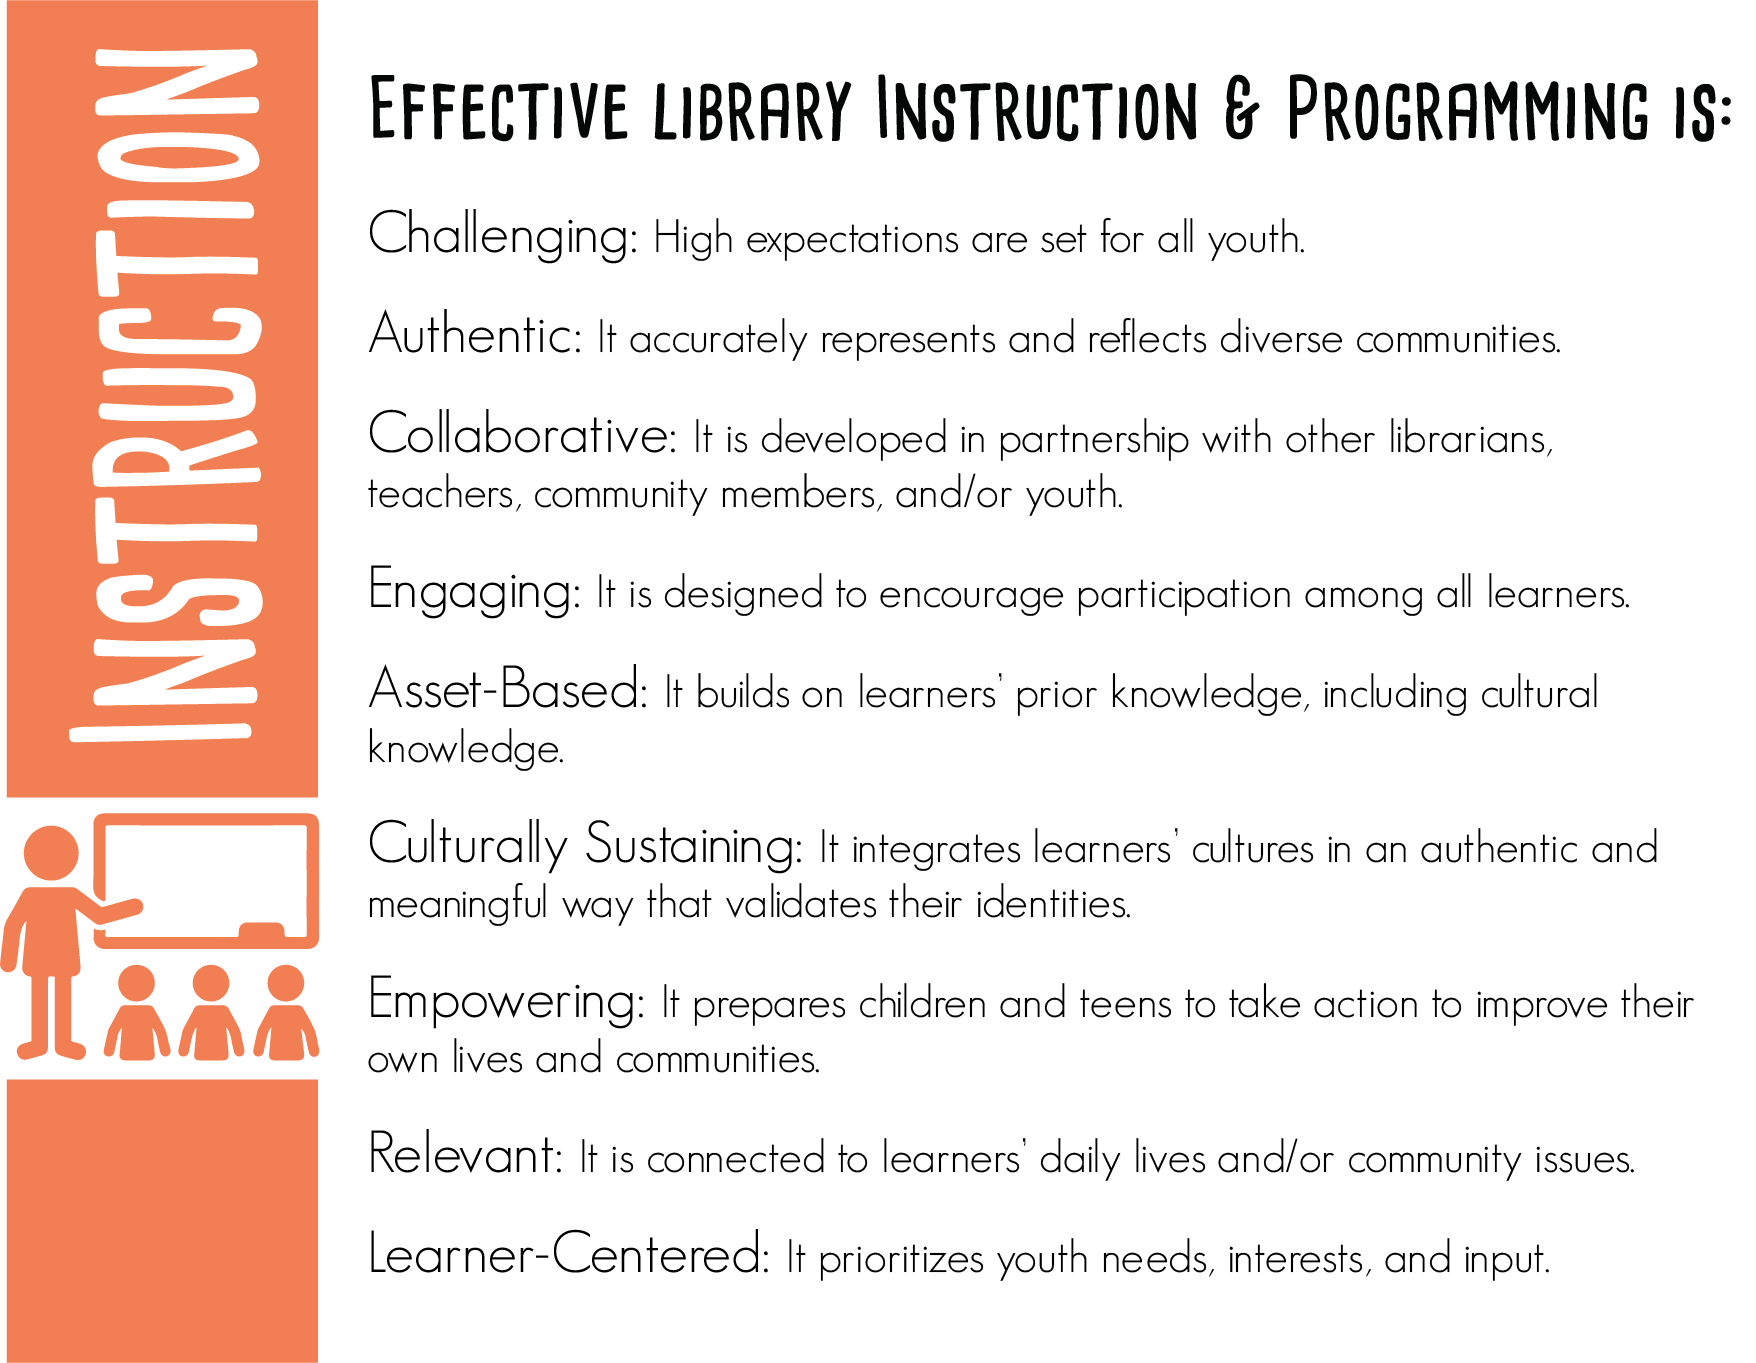 Effective library instruction and programming is: ➢ Challenging: High expectations are set for all youth. ➢ Authentic: It accurately represents and reflects the breadth and complexity of diverse communities. ➢ Collaborative: It is developed in partnership with other librarians, community members, and/or youth. ➢ Engaging: It is designed to encourage participation among all learners. ➢ Asset-Based: It builds on BIYOC's prior knowledge, including cultural knowledge. ➢ Culturally Sustaining: It integrates youth cultures in an authentic and meaningful way that validates youth's identities. ➢ Empowering: It prepares BIYOC to take action to improve their own lives and communities. ➢ Relevant: It is connected to youth's daily lives and/or community issues. ➢ Youth-Centered: It prioritizes BIYOC's needs, interests, and input.